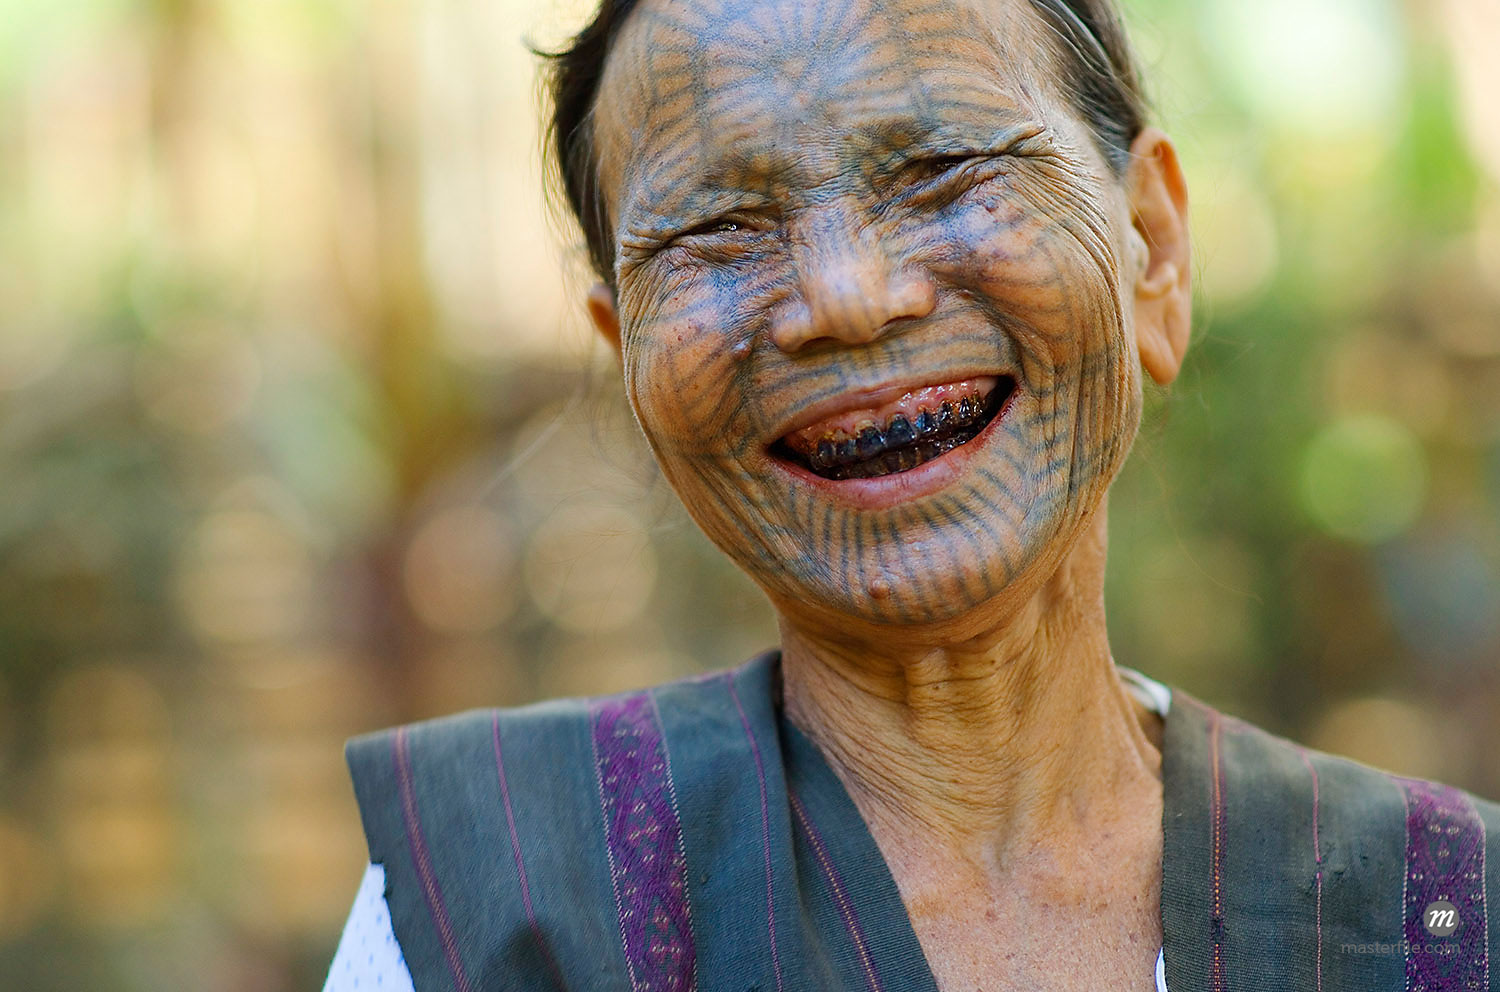 Tattoed Shan Tribal Woman, Mrauk-Oo, Myanmar  © Albert Normandin / Masterfile